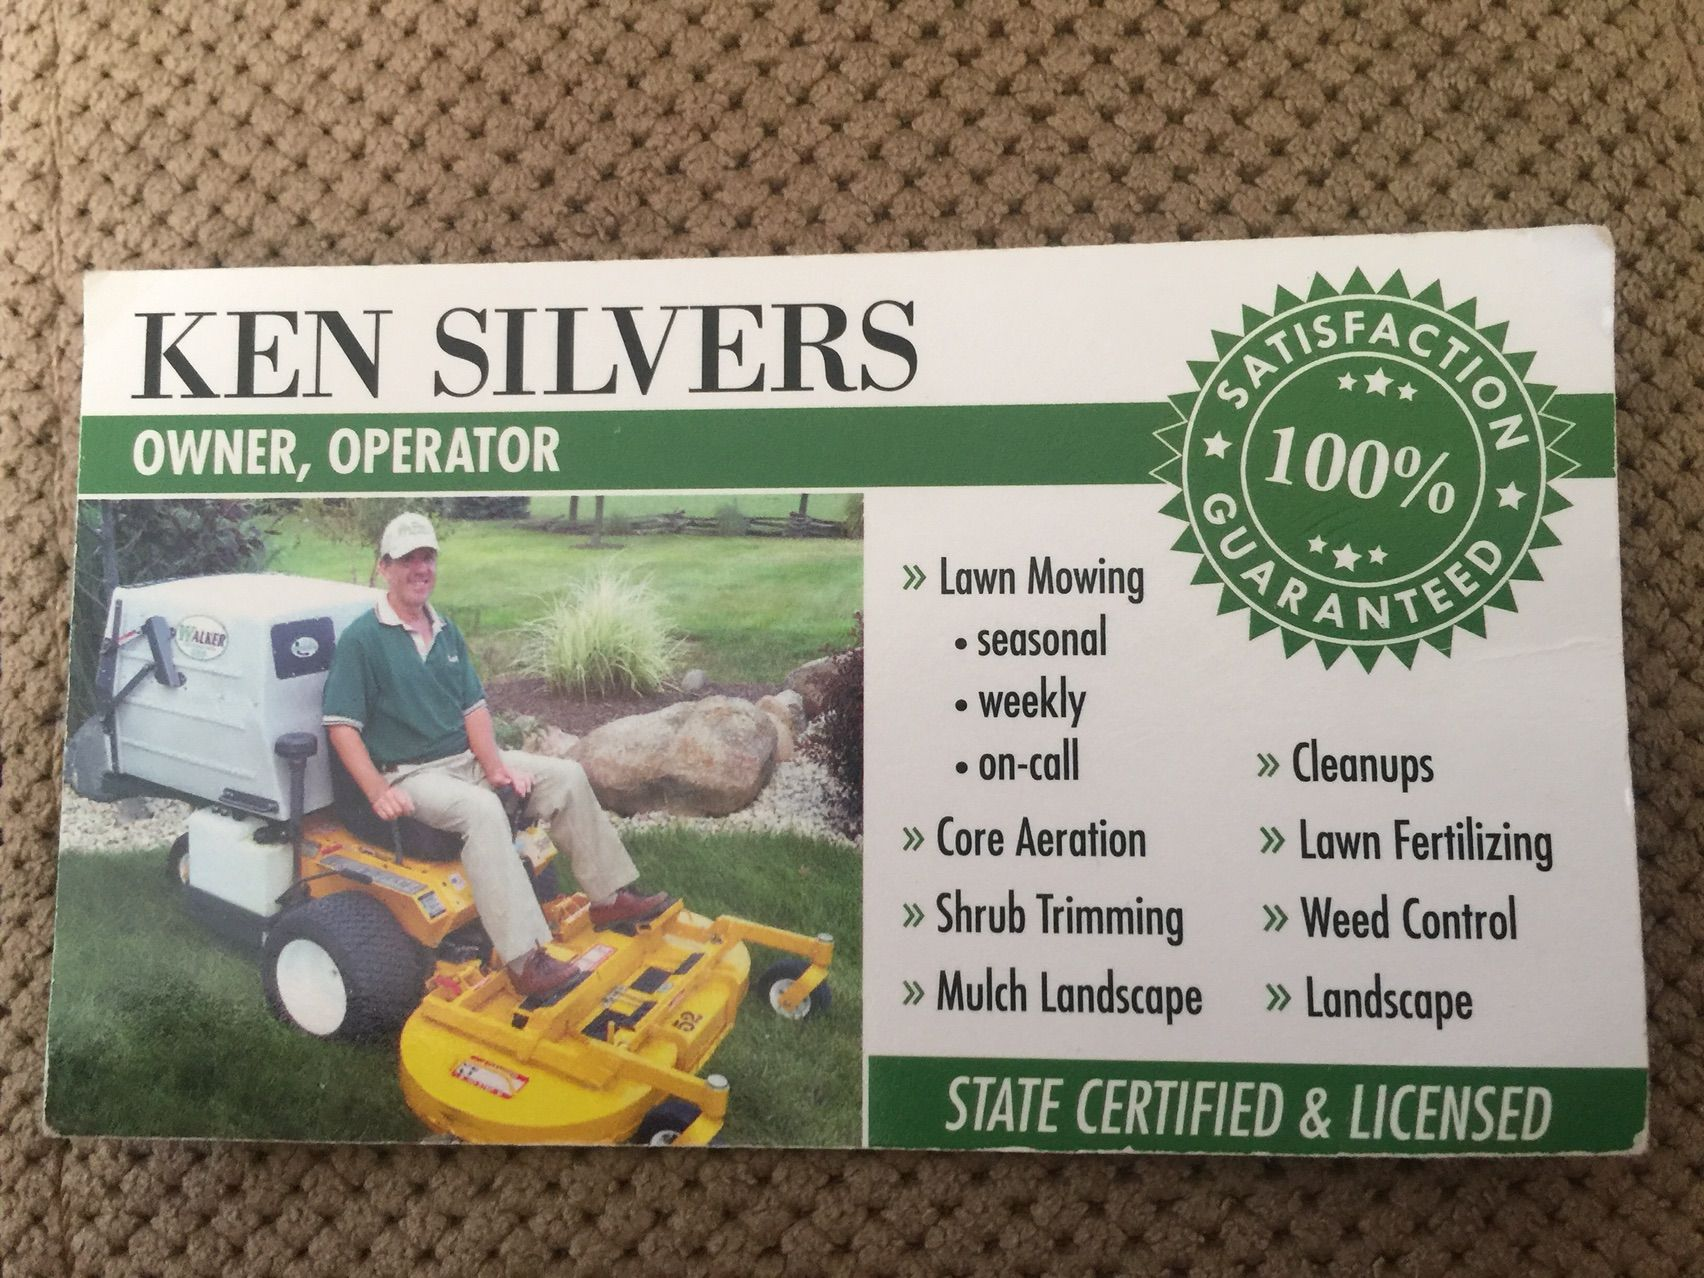 Ken Silvers Residential Lawn Care reslwncre on Pinterest